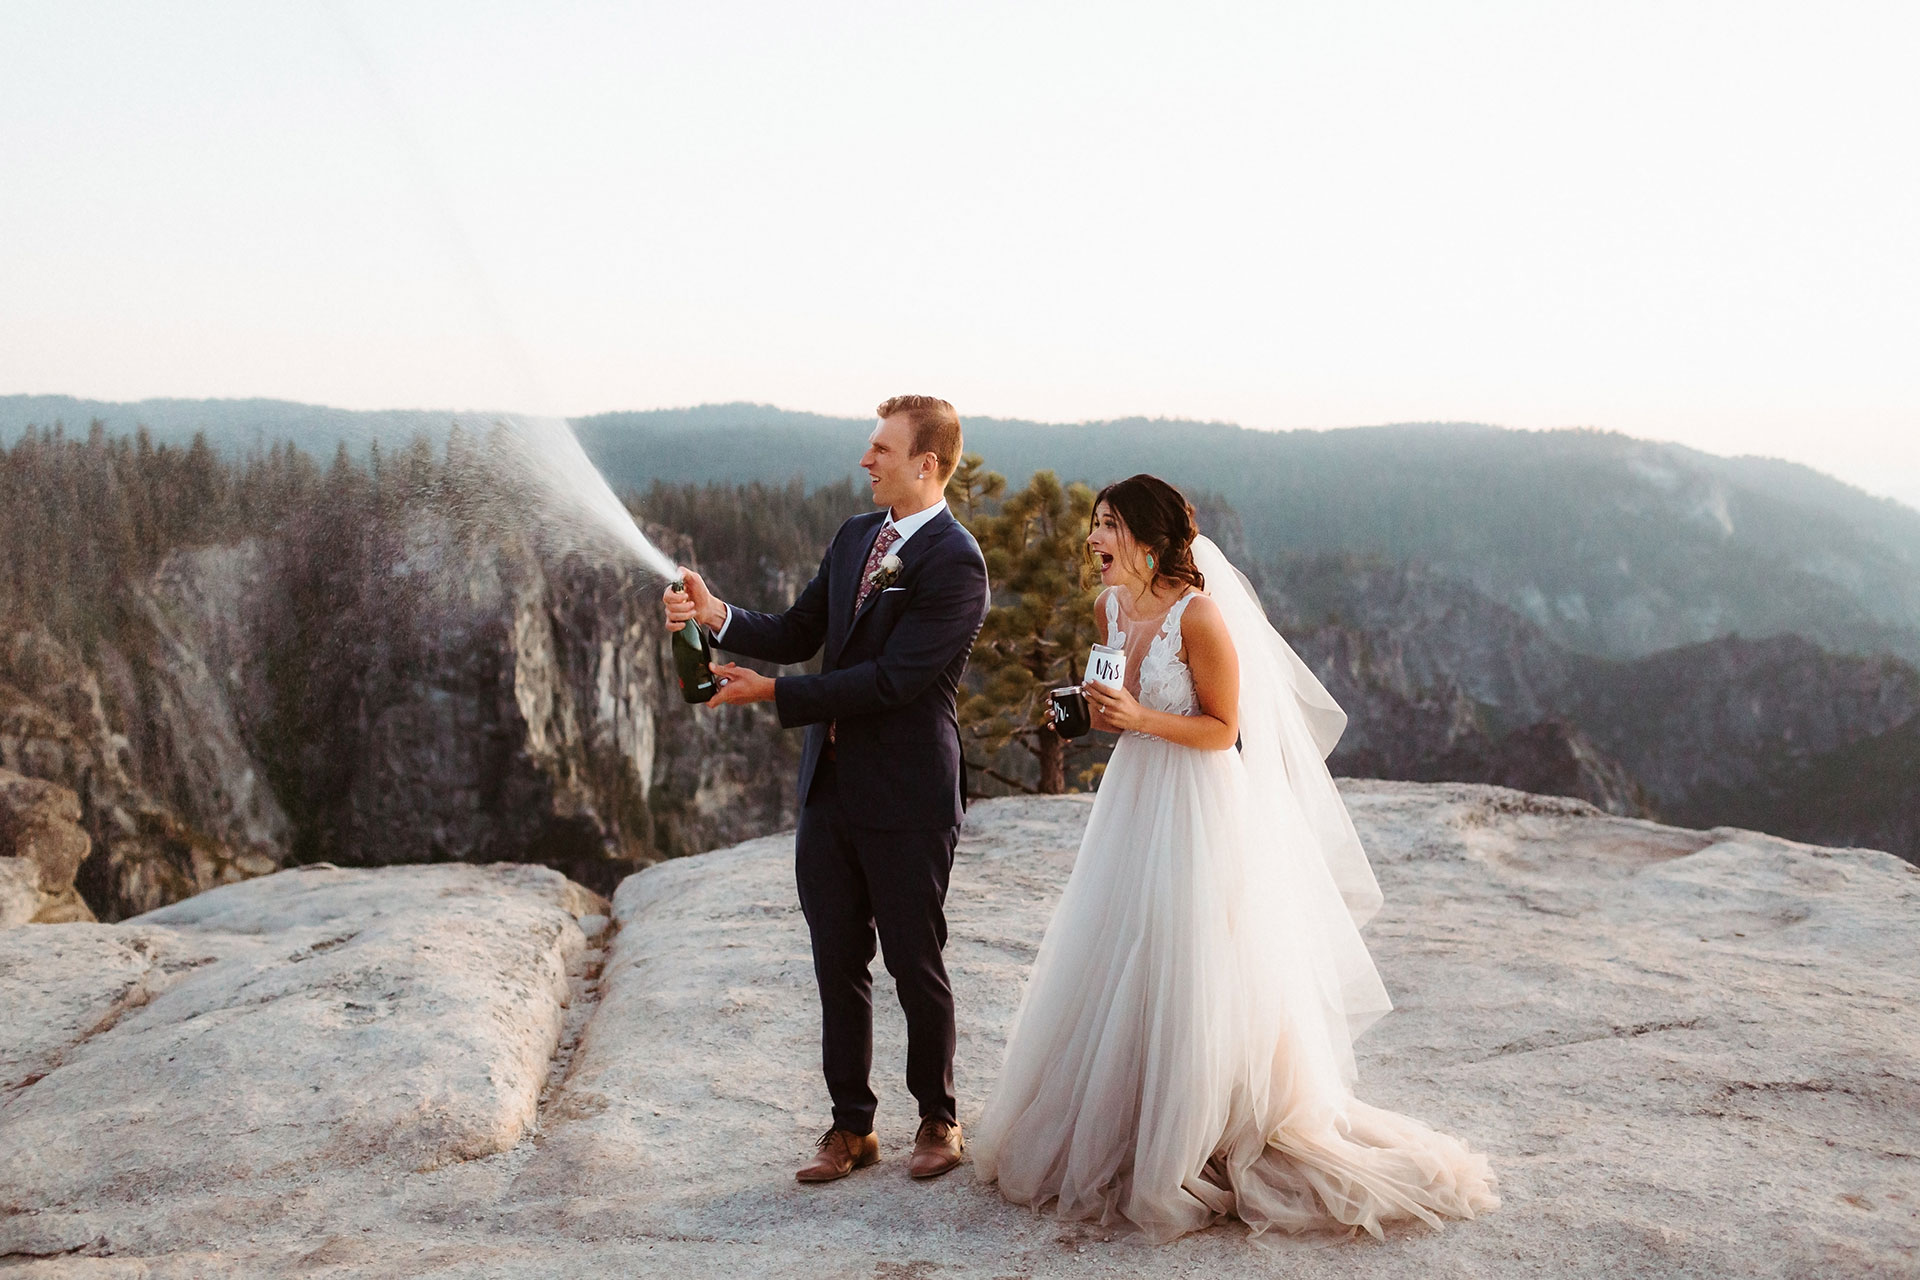 Images of Yosemite National Park, California Elopement Photography   Post ceremony celebration with some champagne